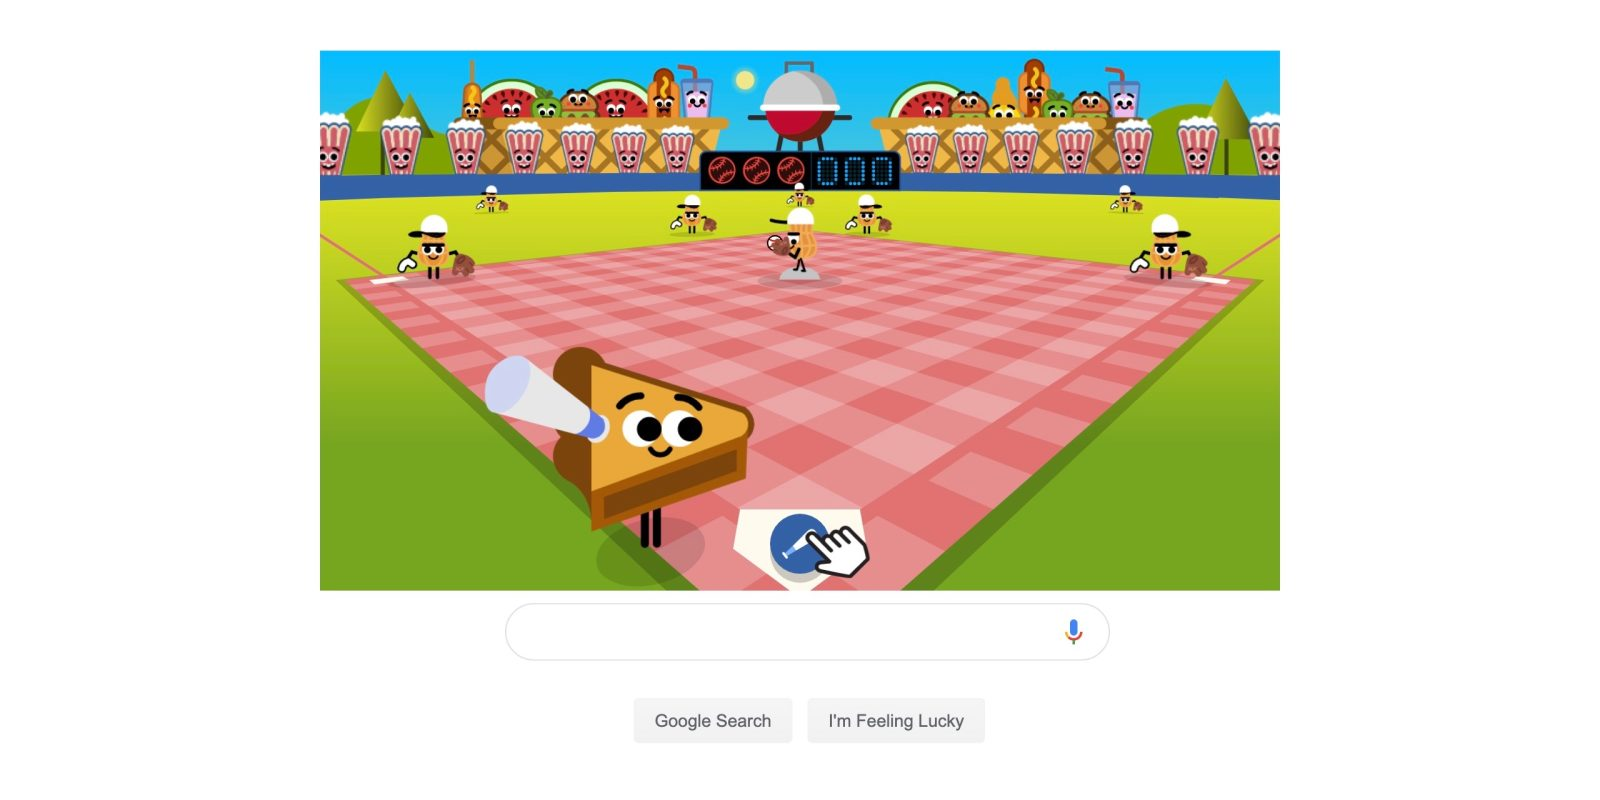 Google's 'Fourth Of July' Doodle Is A BBQ Baseball Game